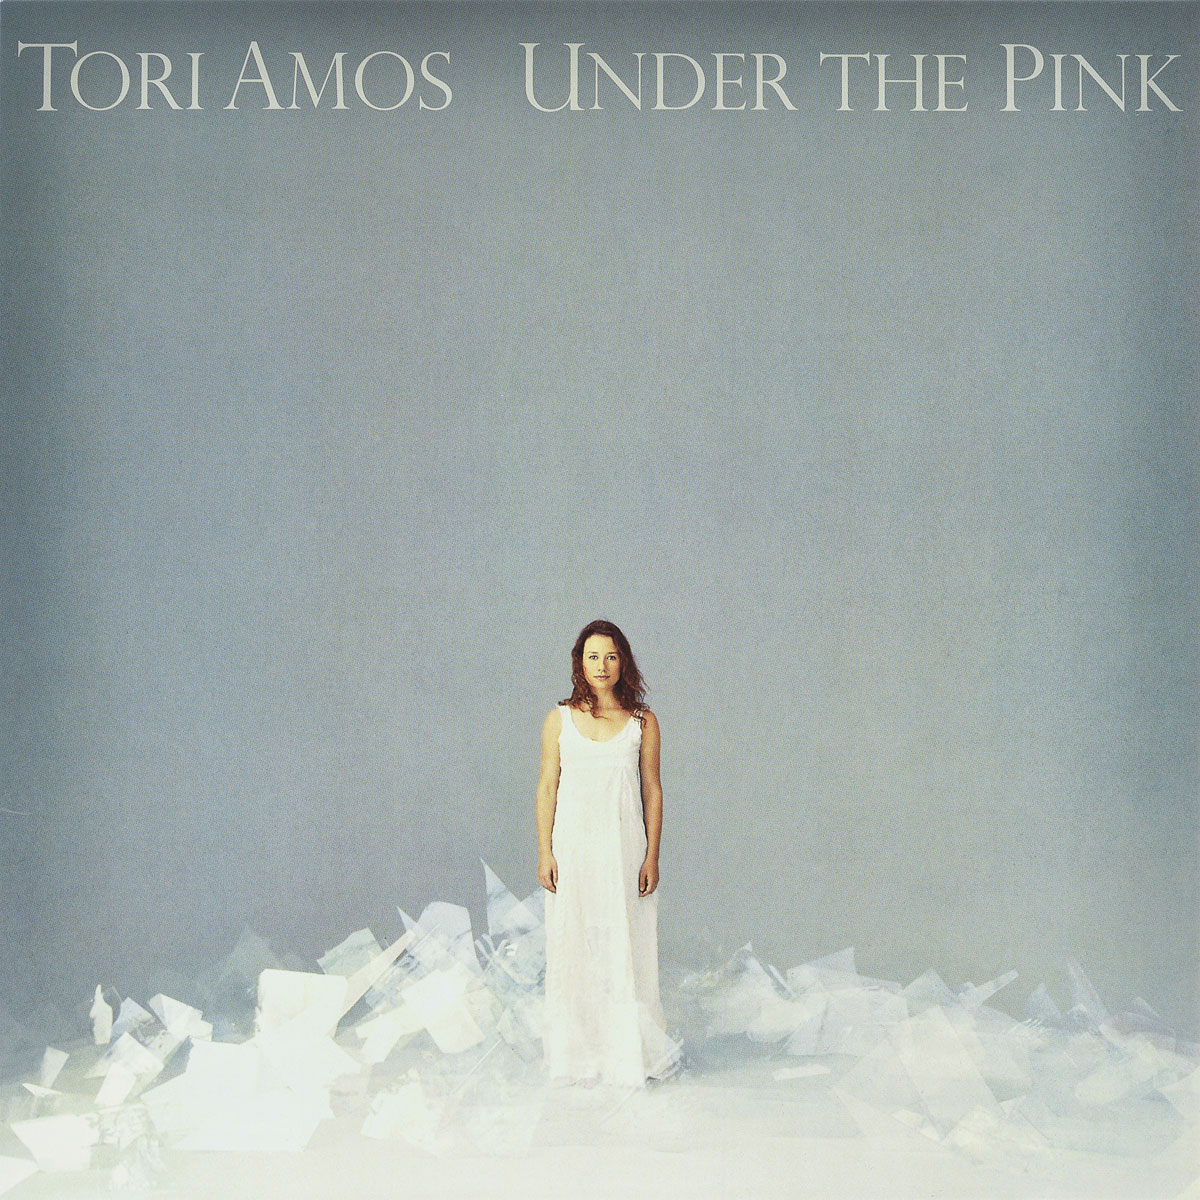 Тори Эмос Tori Amos. Under The Pink (LP) тори эмос tori amos little earthquakes lp